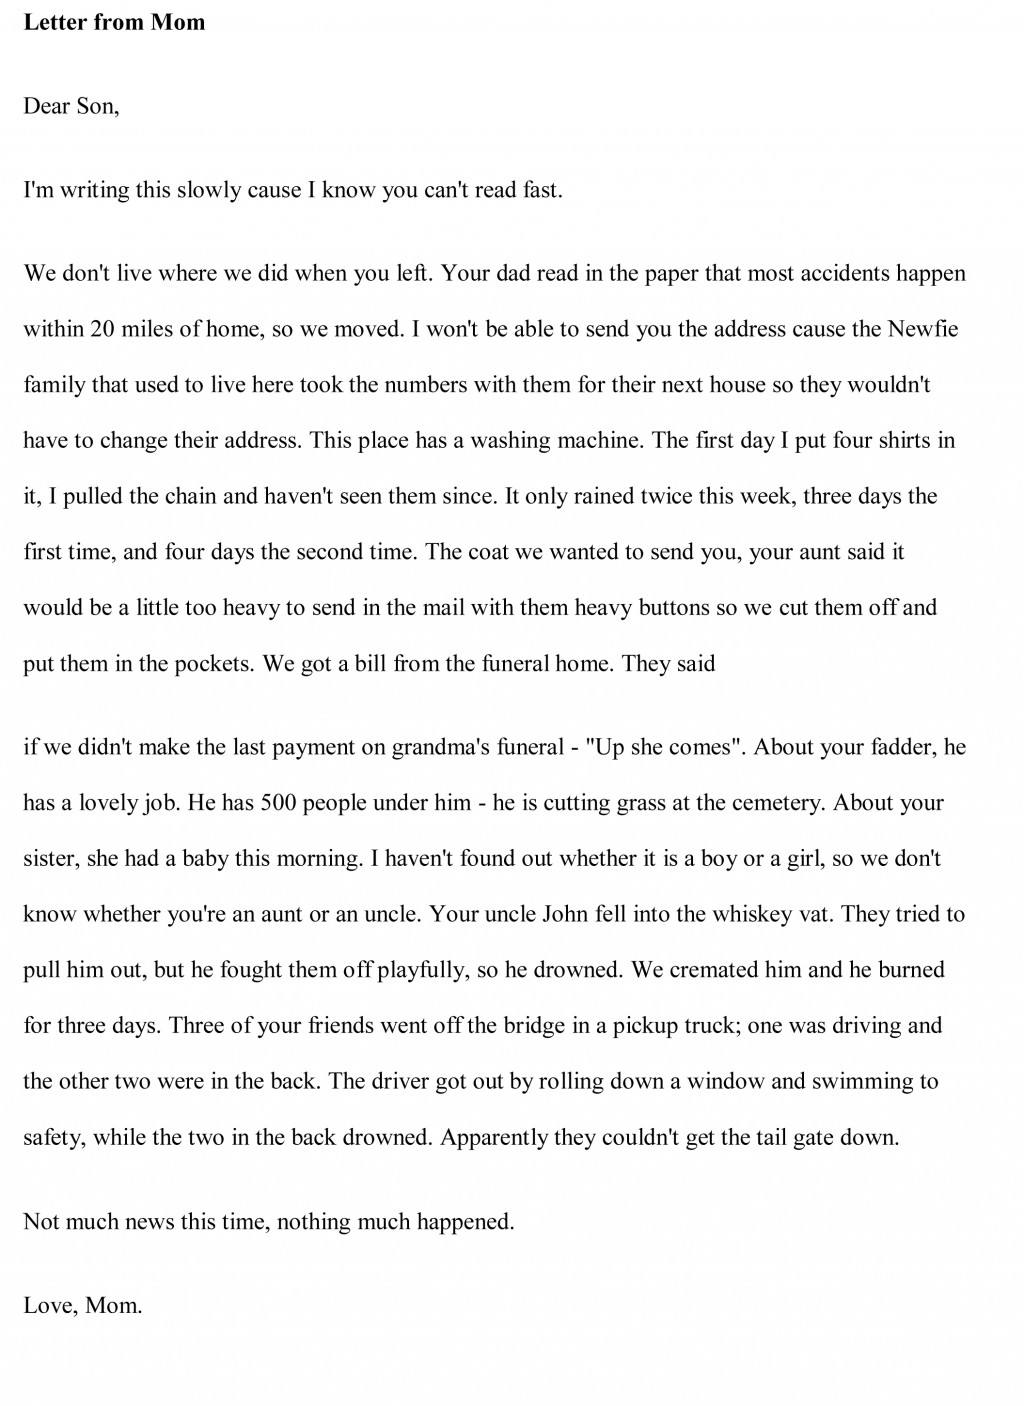 015 Interesting Essay Topics Example Funny Free Amazing For Grade 7 9 Pat 7th Large